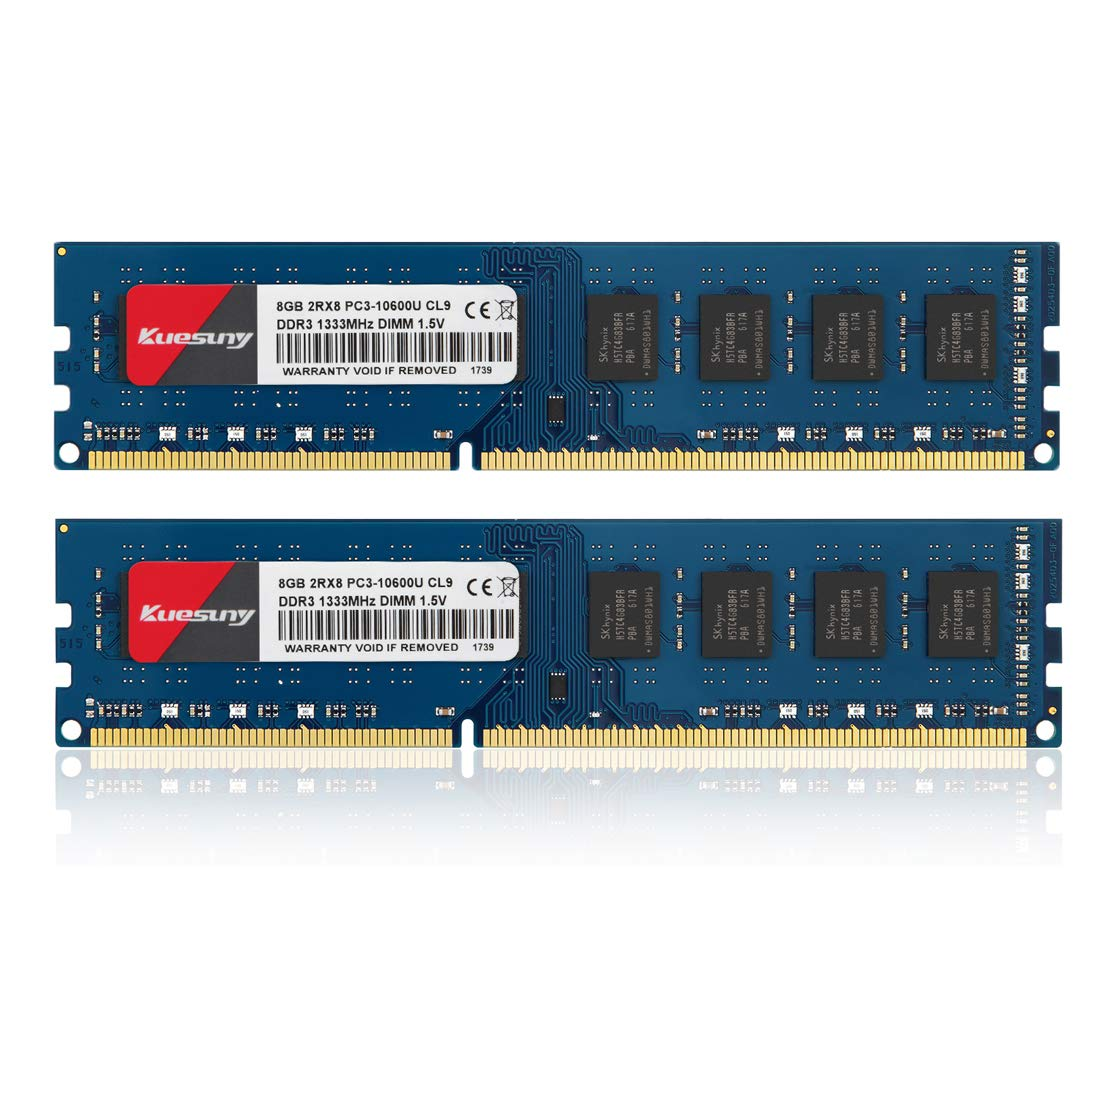 Memoria Ram 16gb Kuesuny Kit (8gbx2) Ddr3-1333 Udimm Pc3-10600 / Pc3-10600u 8gb Cl9 240 Pin 2rx8 Dual Rank Non Ecc Unbuf